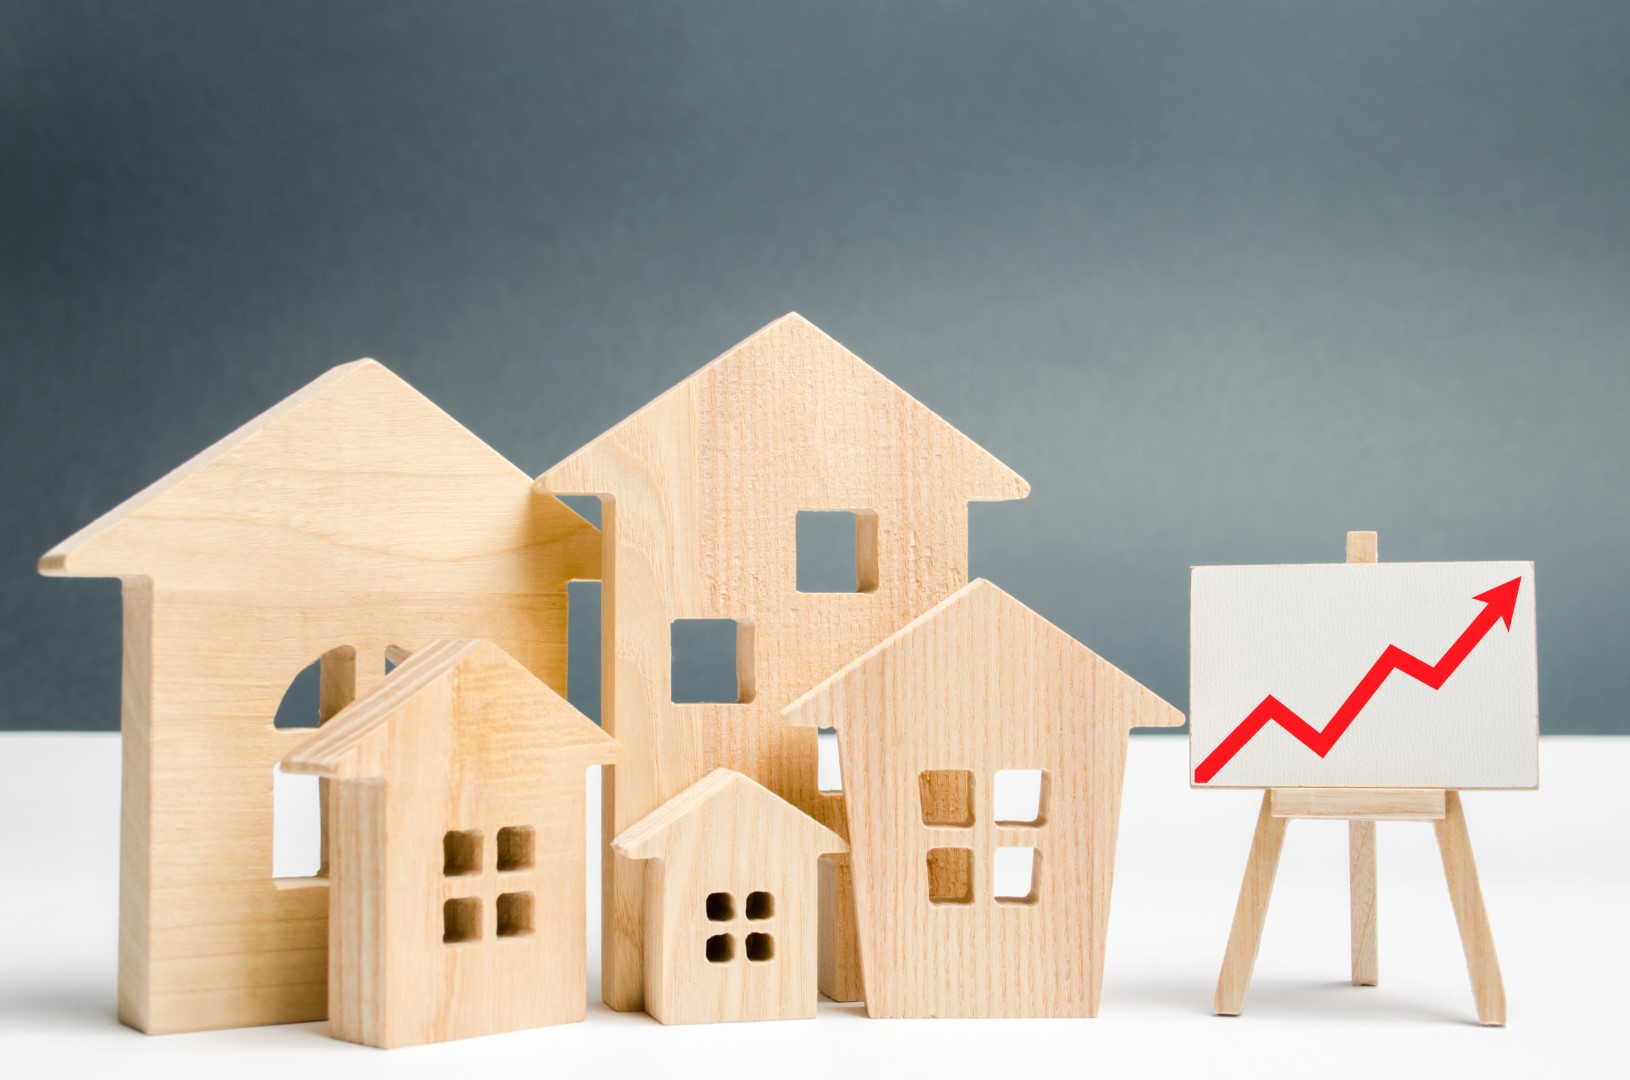 CMI State of the Market: Canada's Resilient Housing Market Sets New Records in September Ahead of Covid Surge